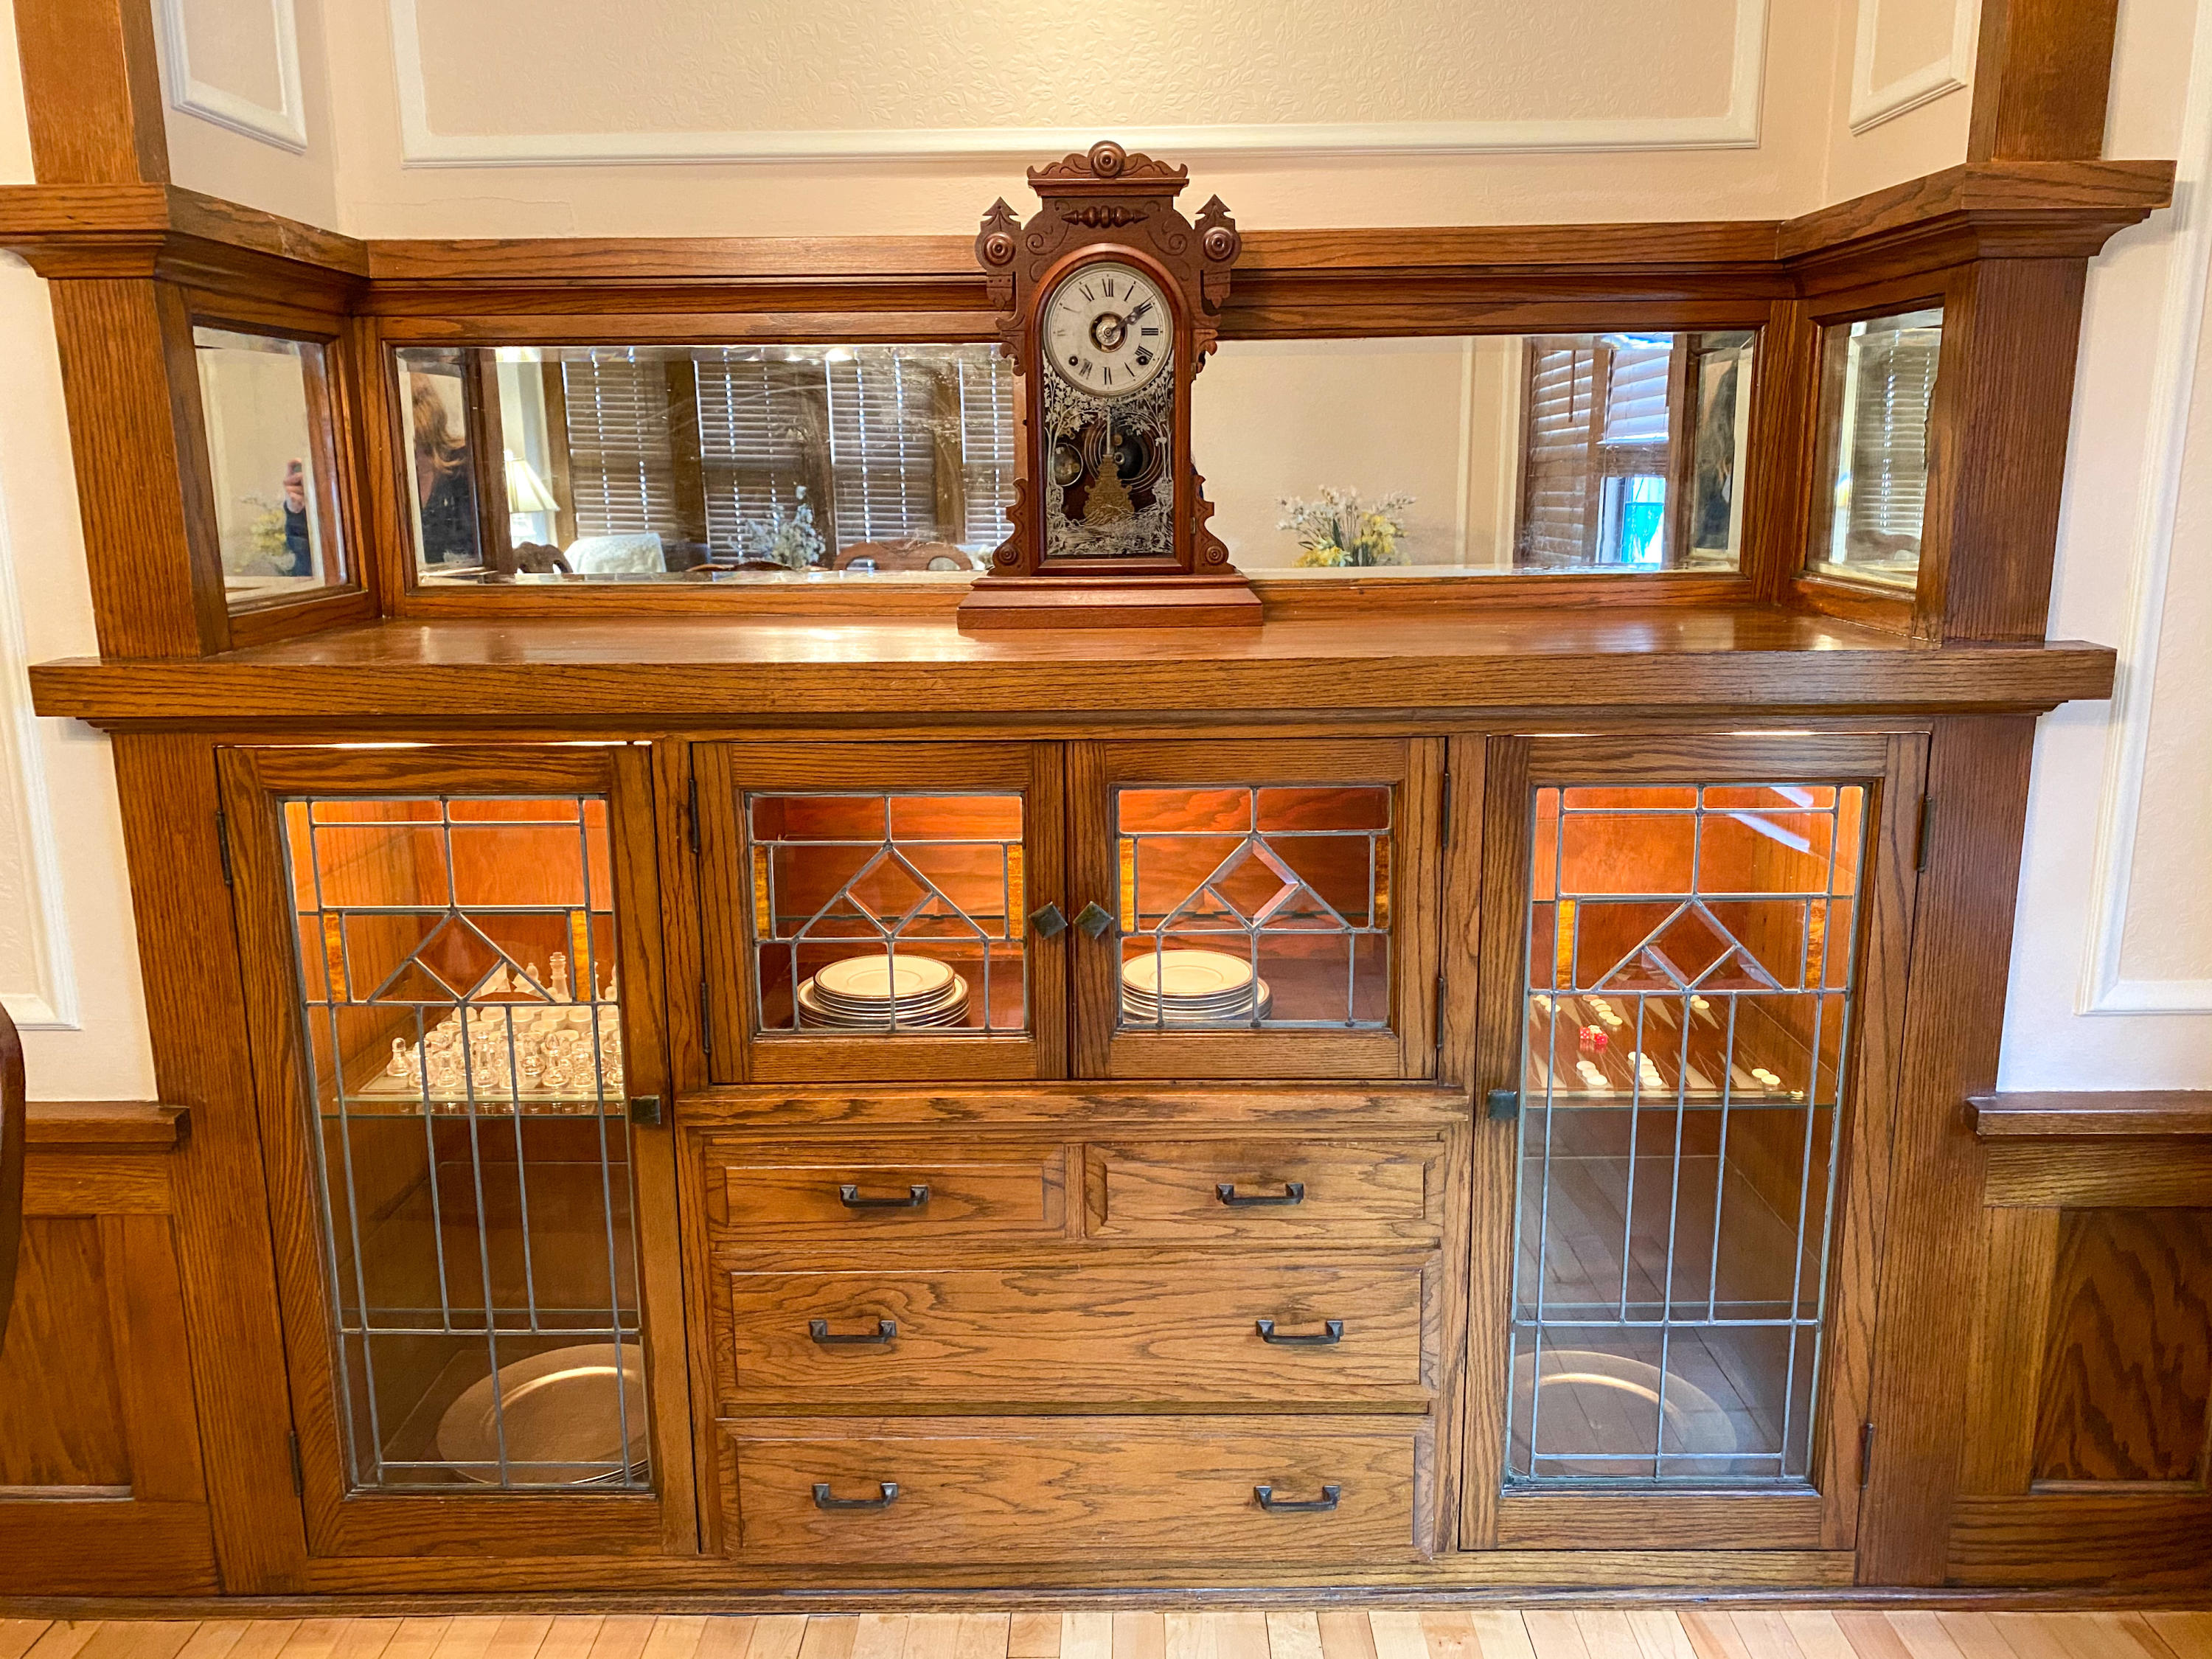 Built in Chin cabinet